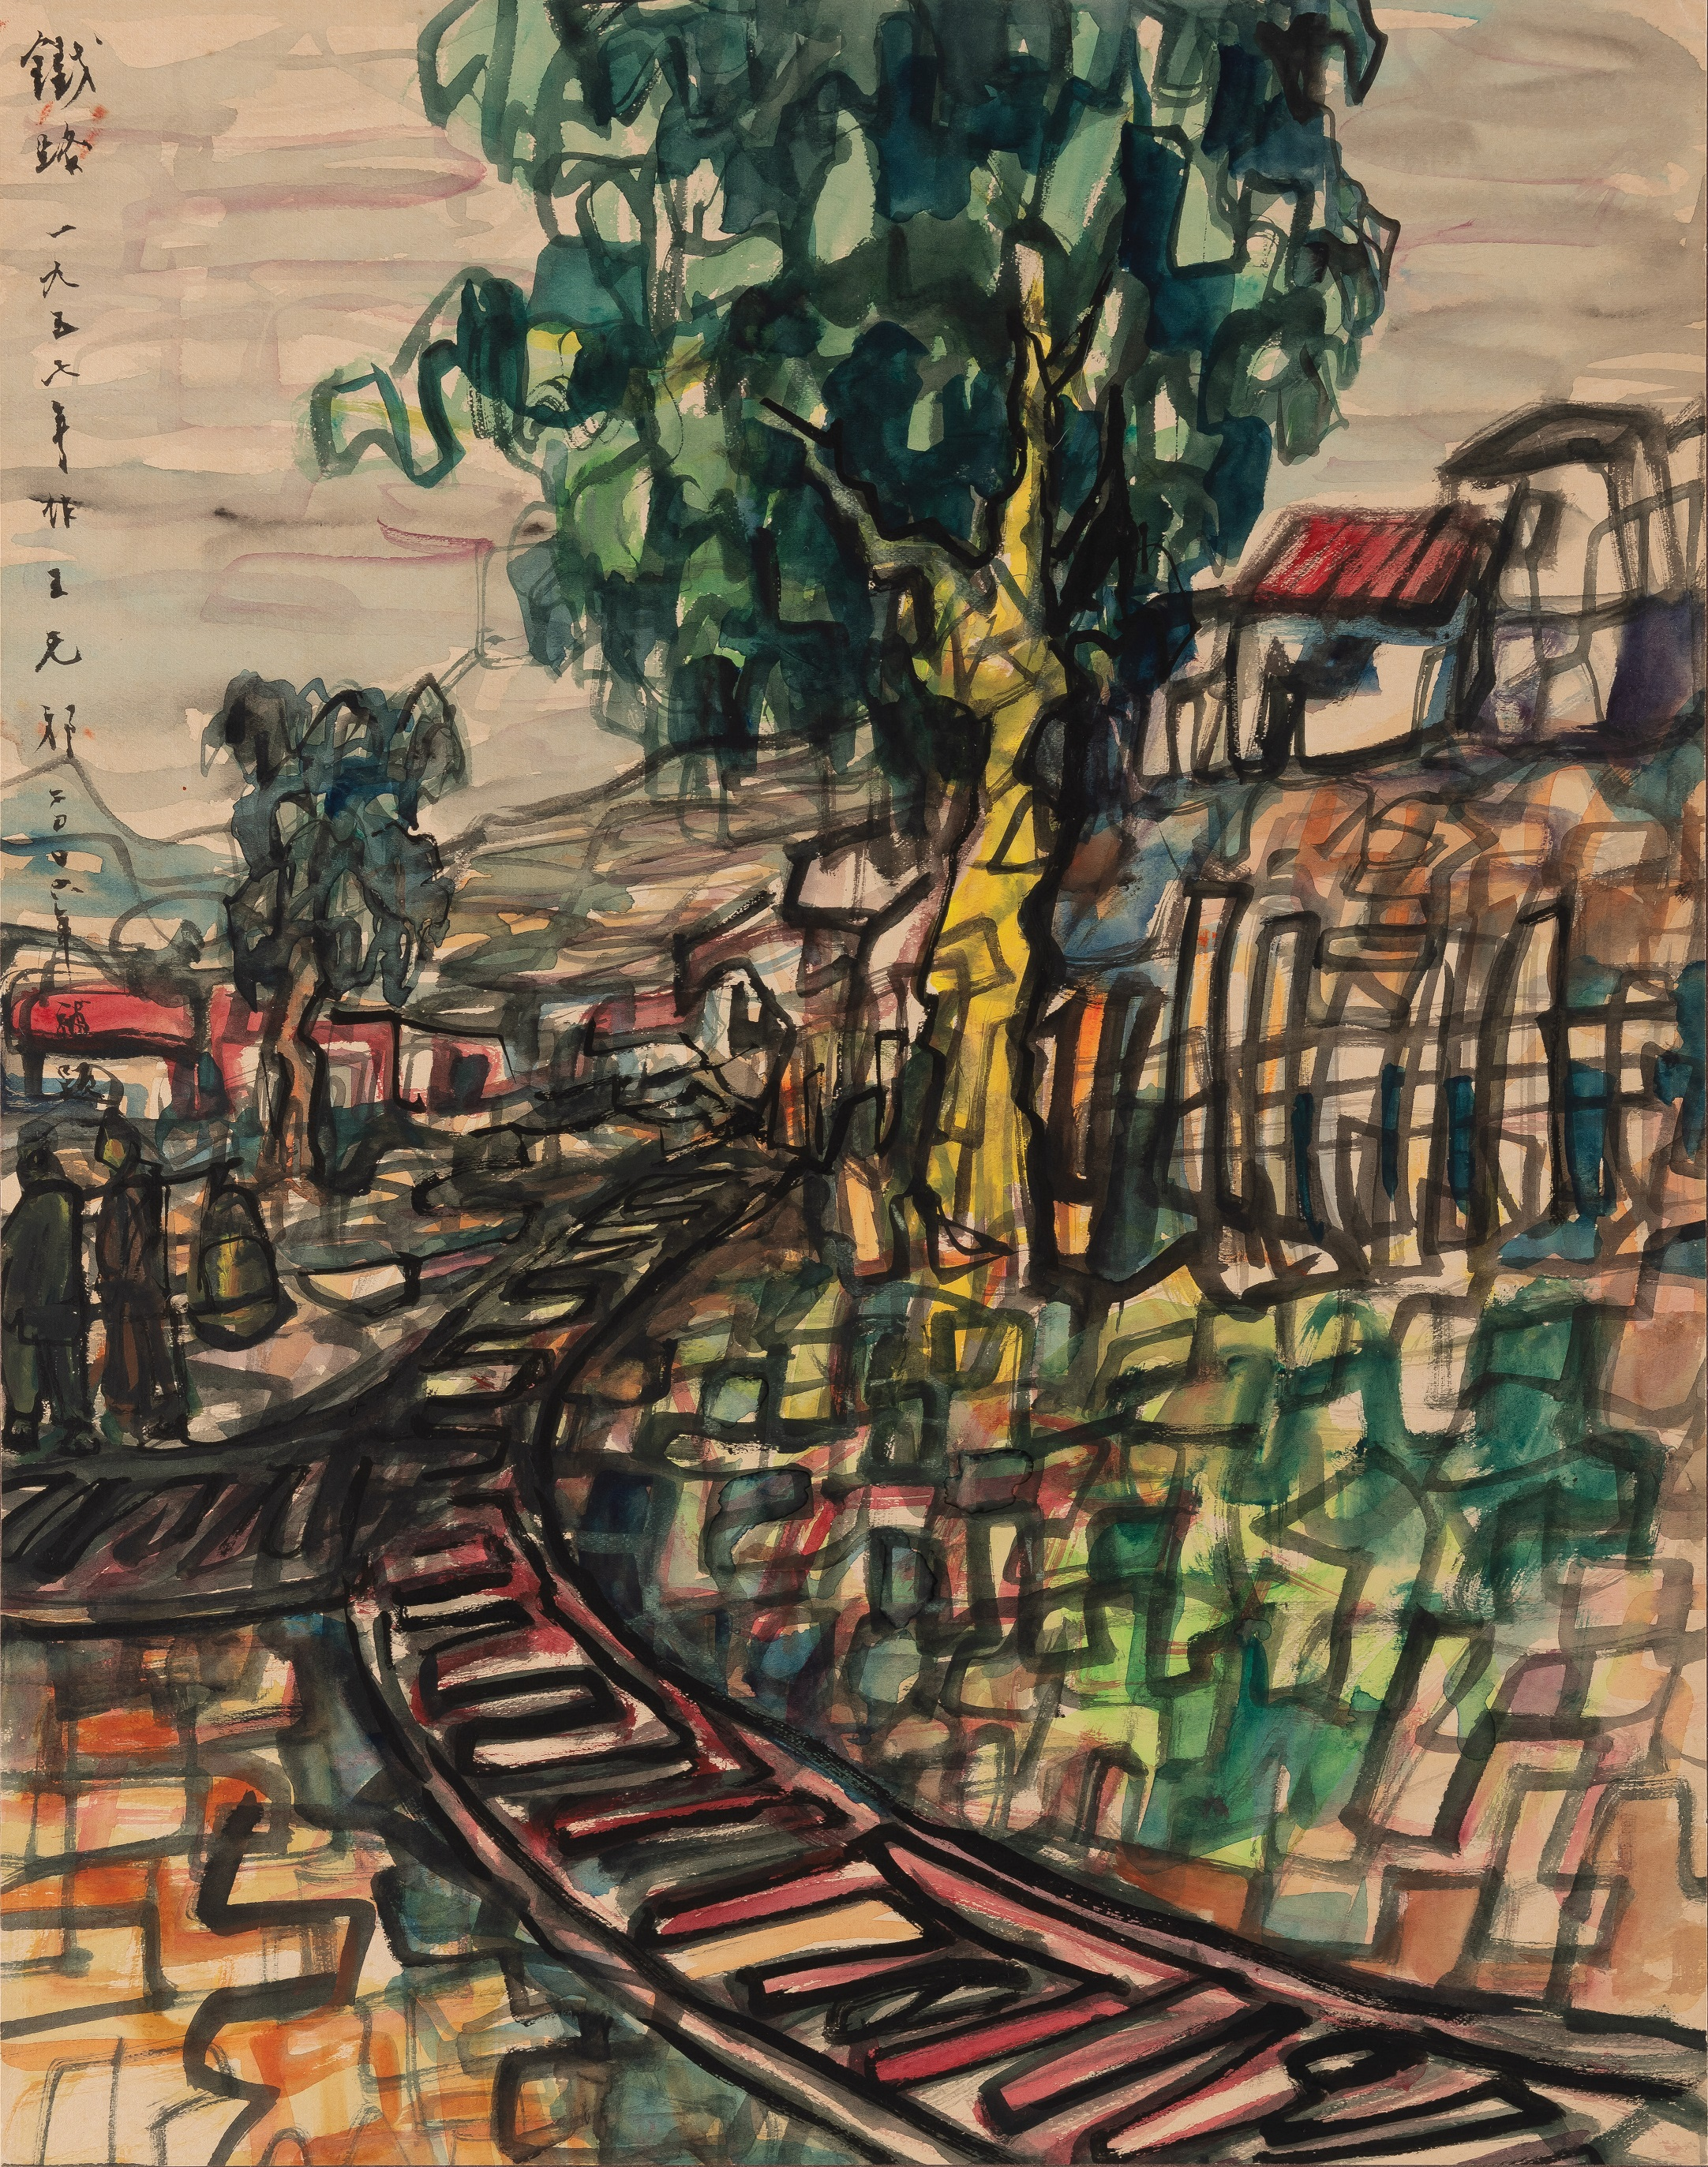 'Railway' by Wucius Wong, Dated 1957<br>王無邪, 鐵路 - 1957 年